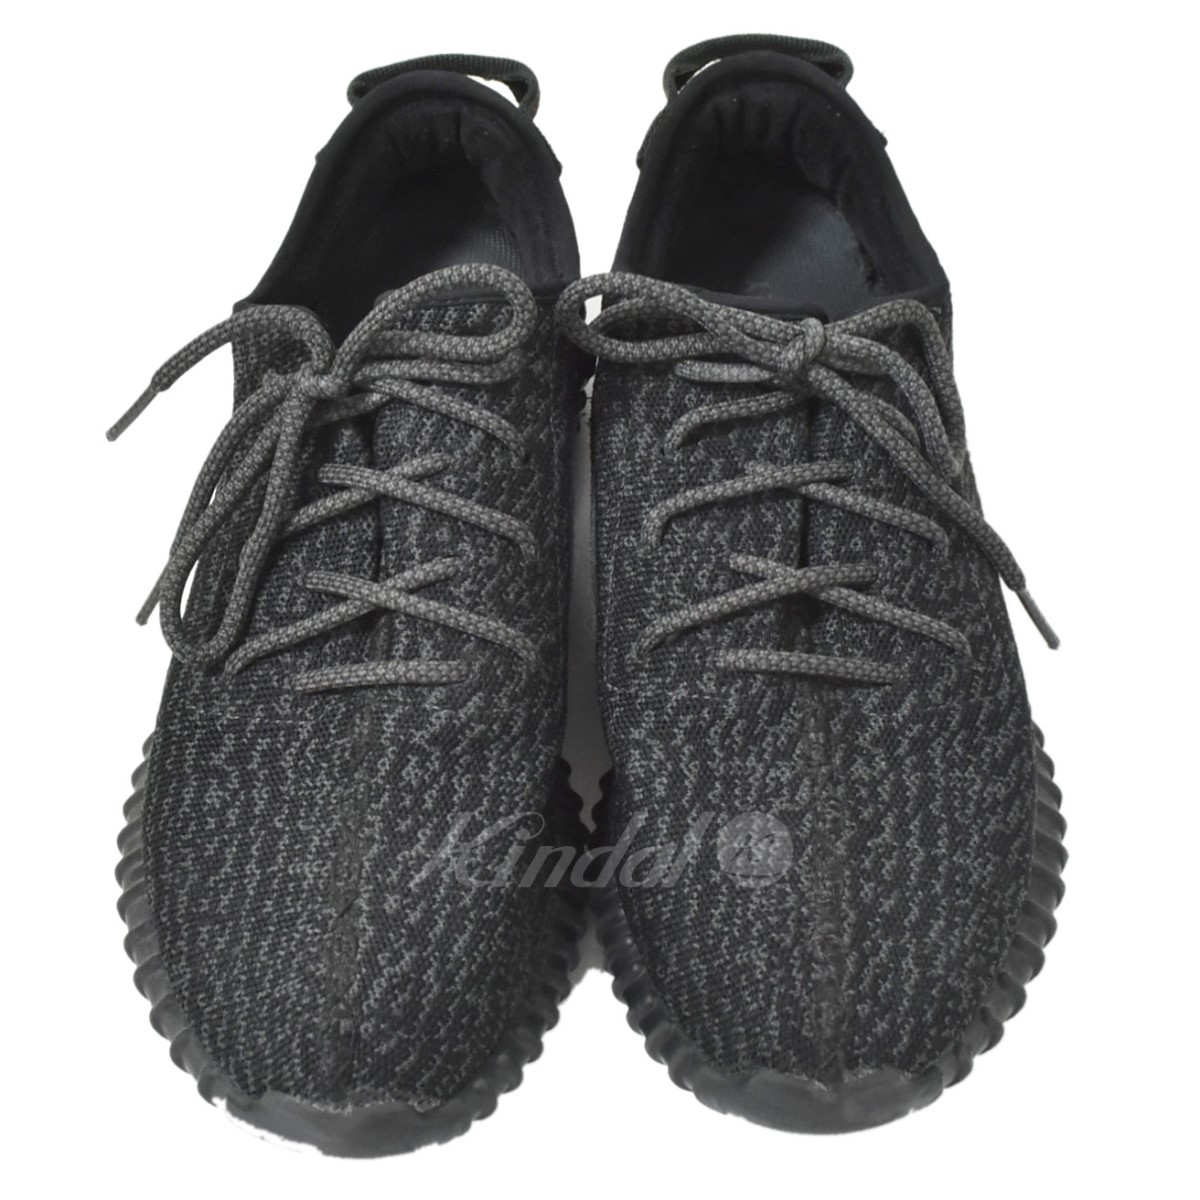 best service 1fd42 c6dab adidas YEEZY BOOST 350 PIRATE BLACK sneakers black size: 28 0 (Adidas)